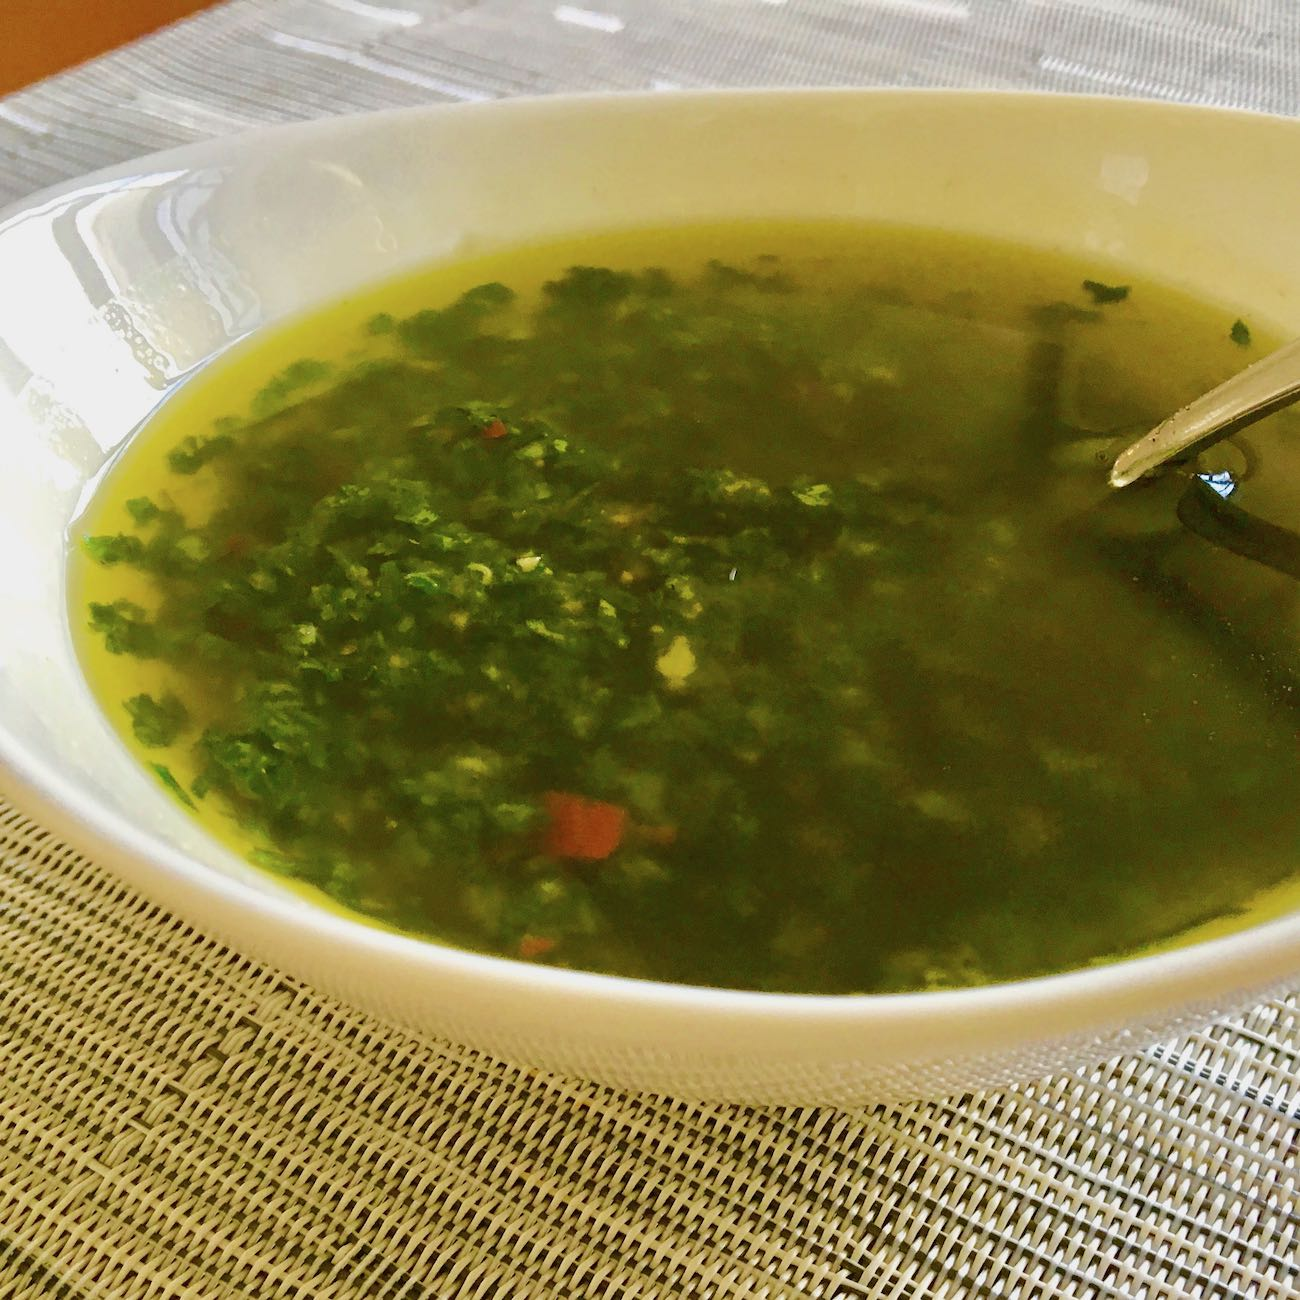 Chimichurri, Grilled Meat Sauce